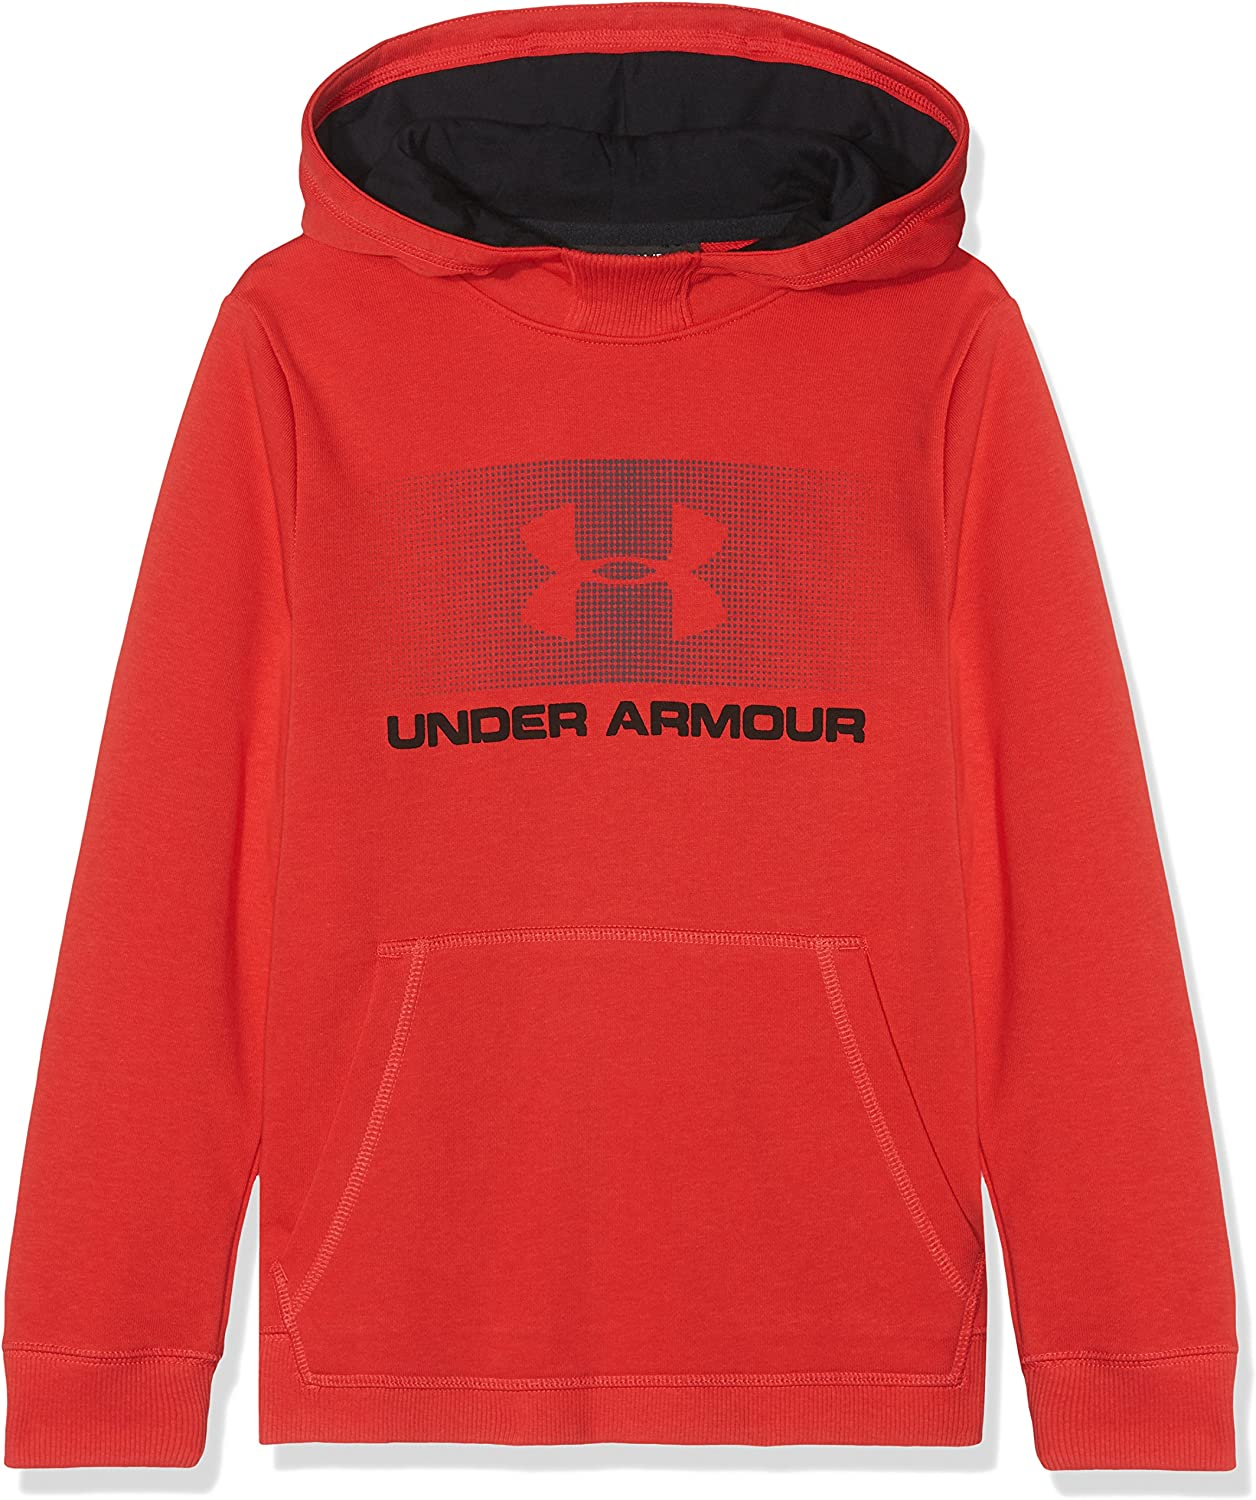 Under Armour Boys Terry Hoodie